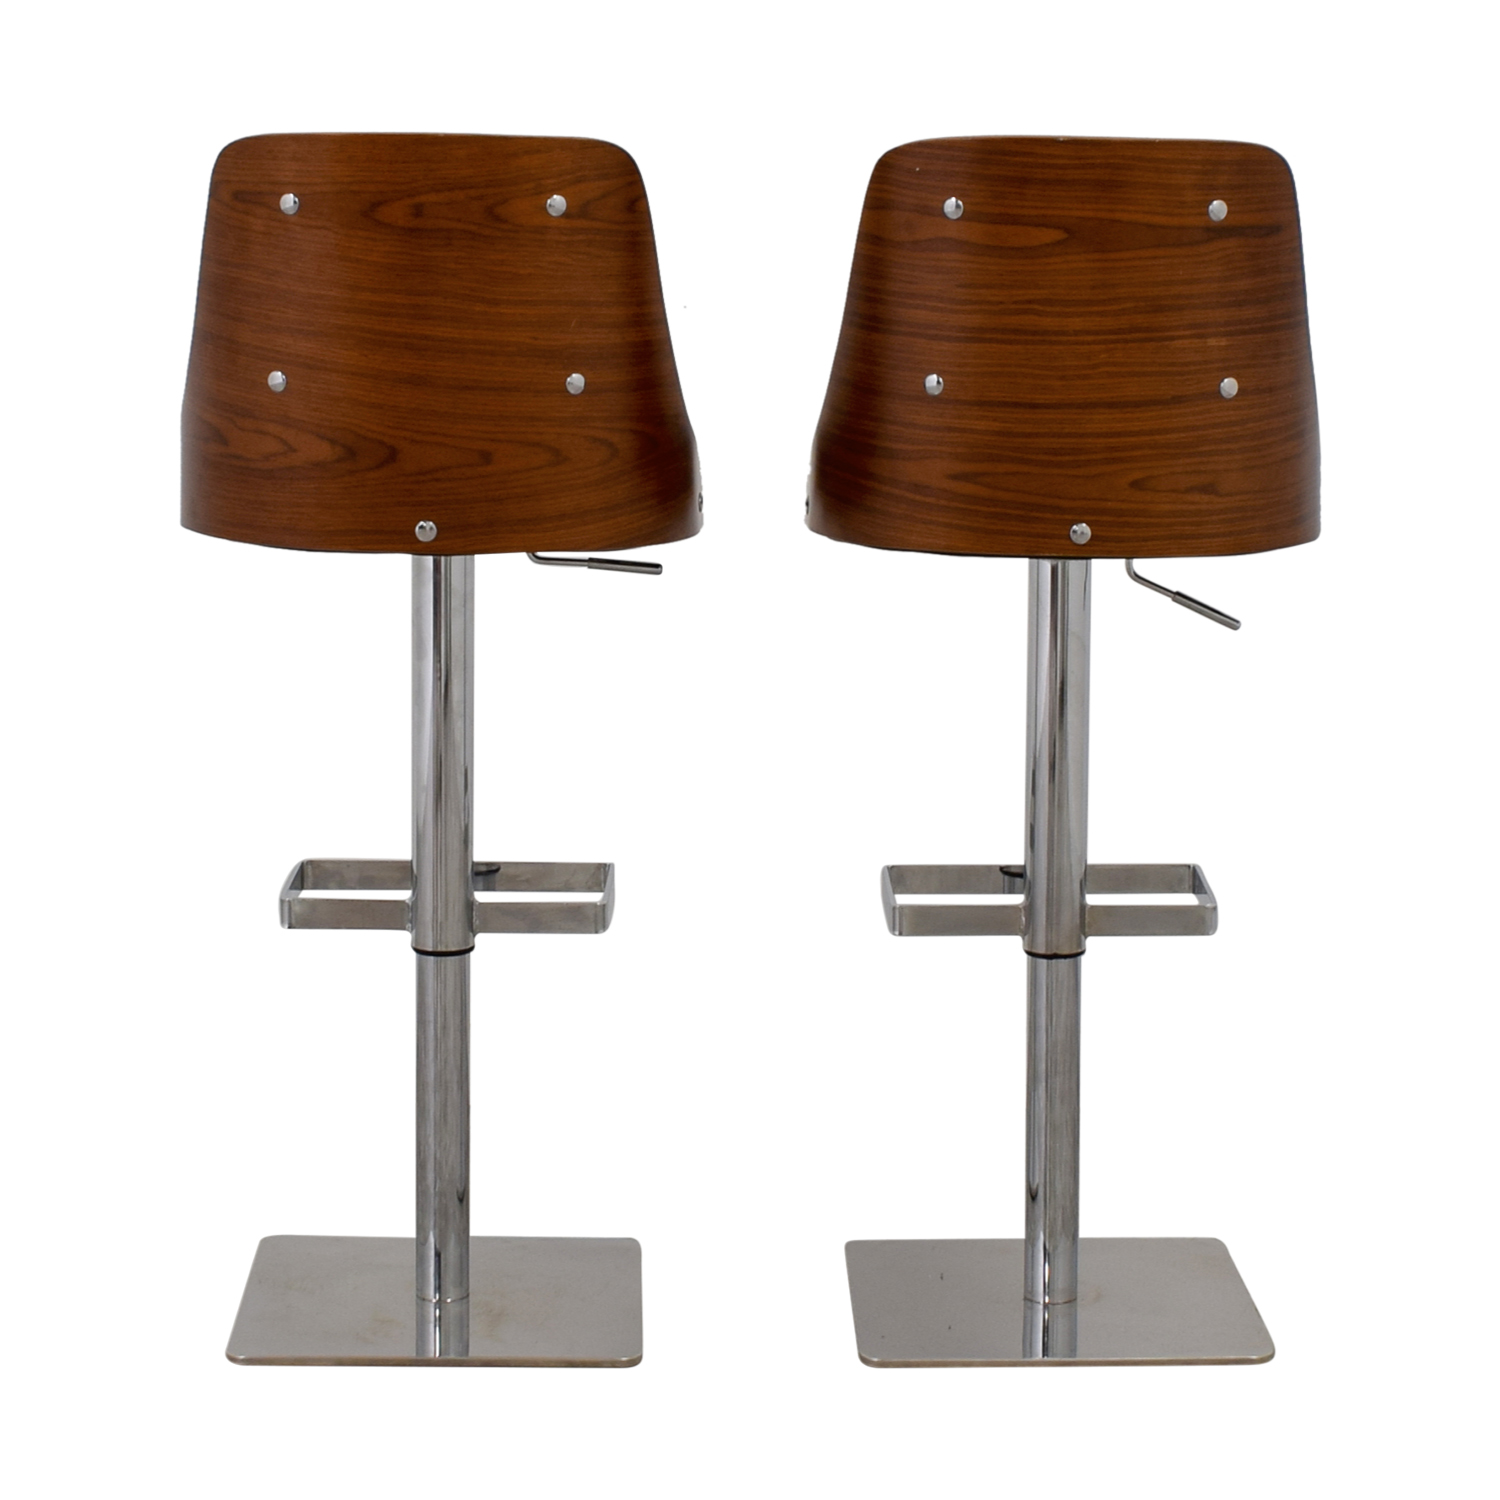 Sunpan Modern Sunpan Modern Braiden Adjustable Bar Stools nyc